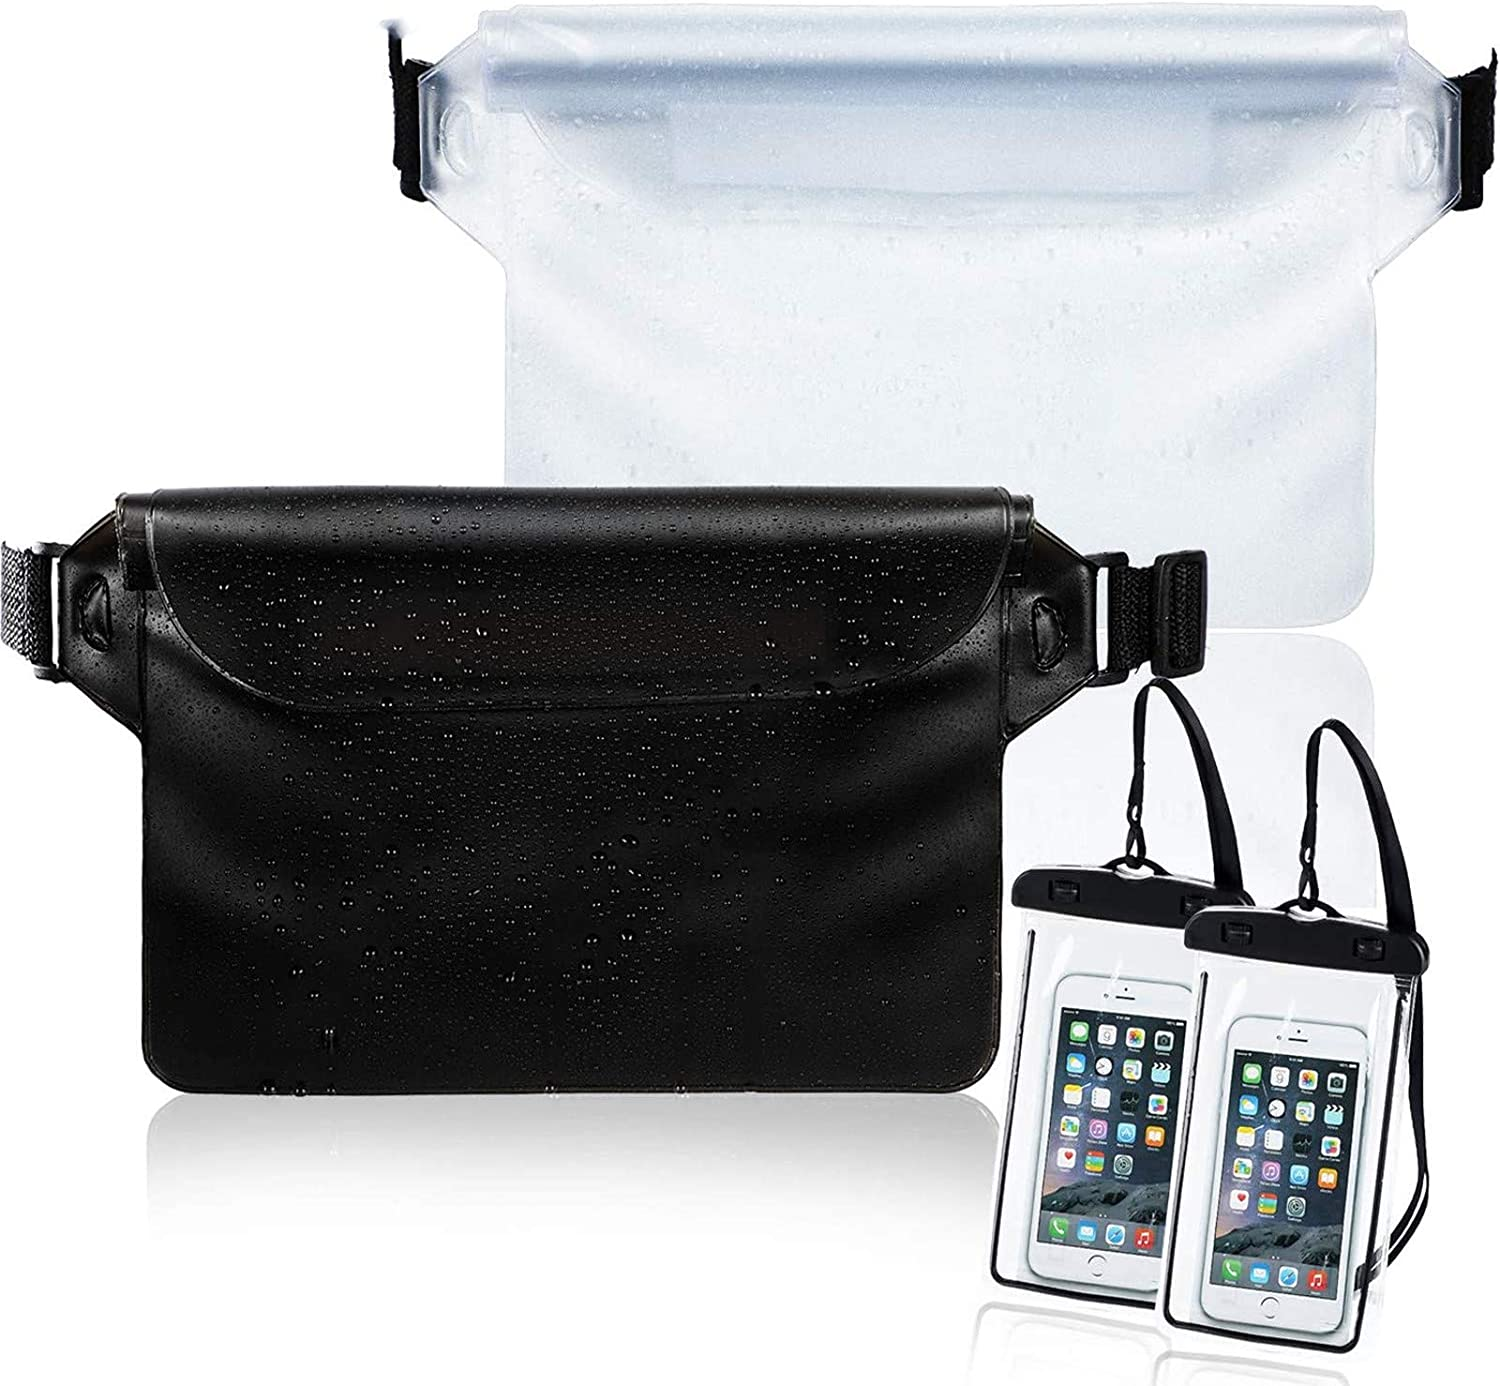 Weewooday 2 Pieces Waterproof Waist Pouch and 2 Piece Black Waterproof Phone Case Dry Bag for Boating Swimming Kayaking Beach Pool Water Parks, Keeping Phone Wallet Safe and Dry (Color Set 4)